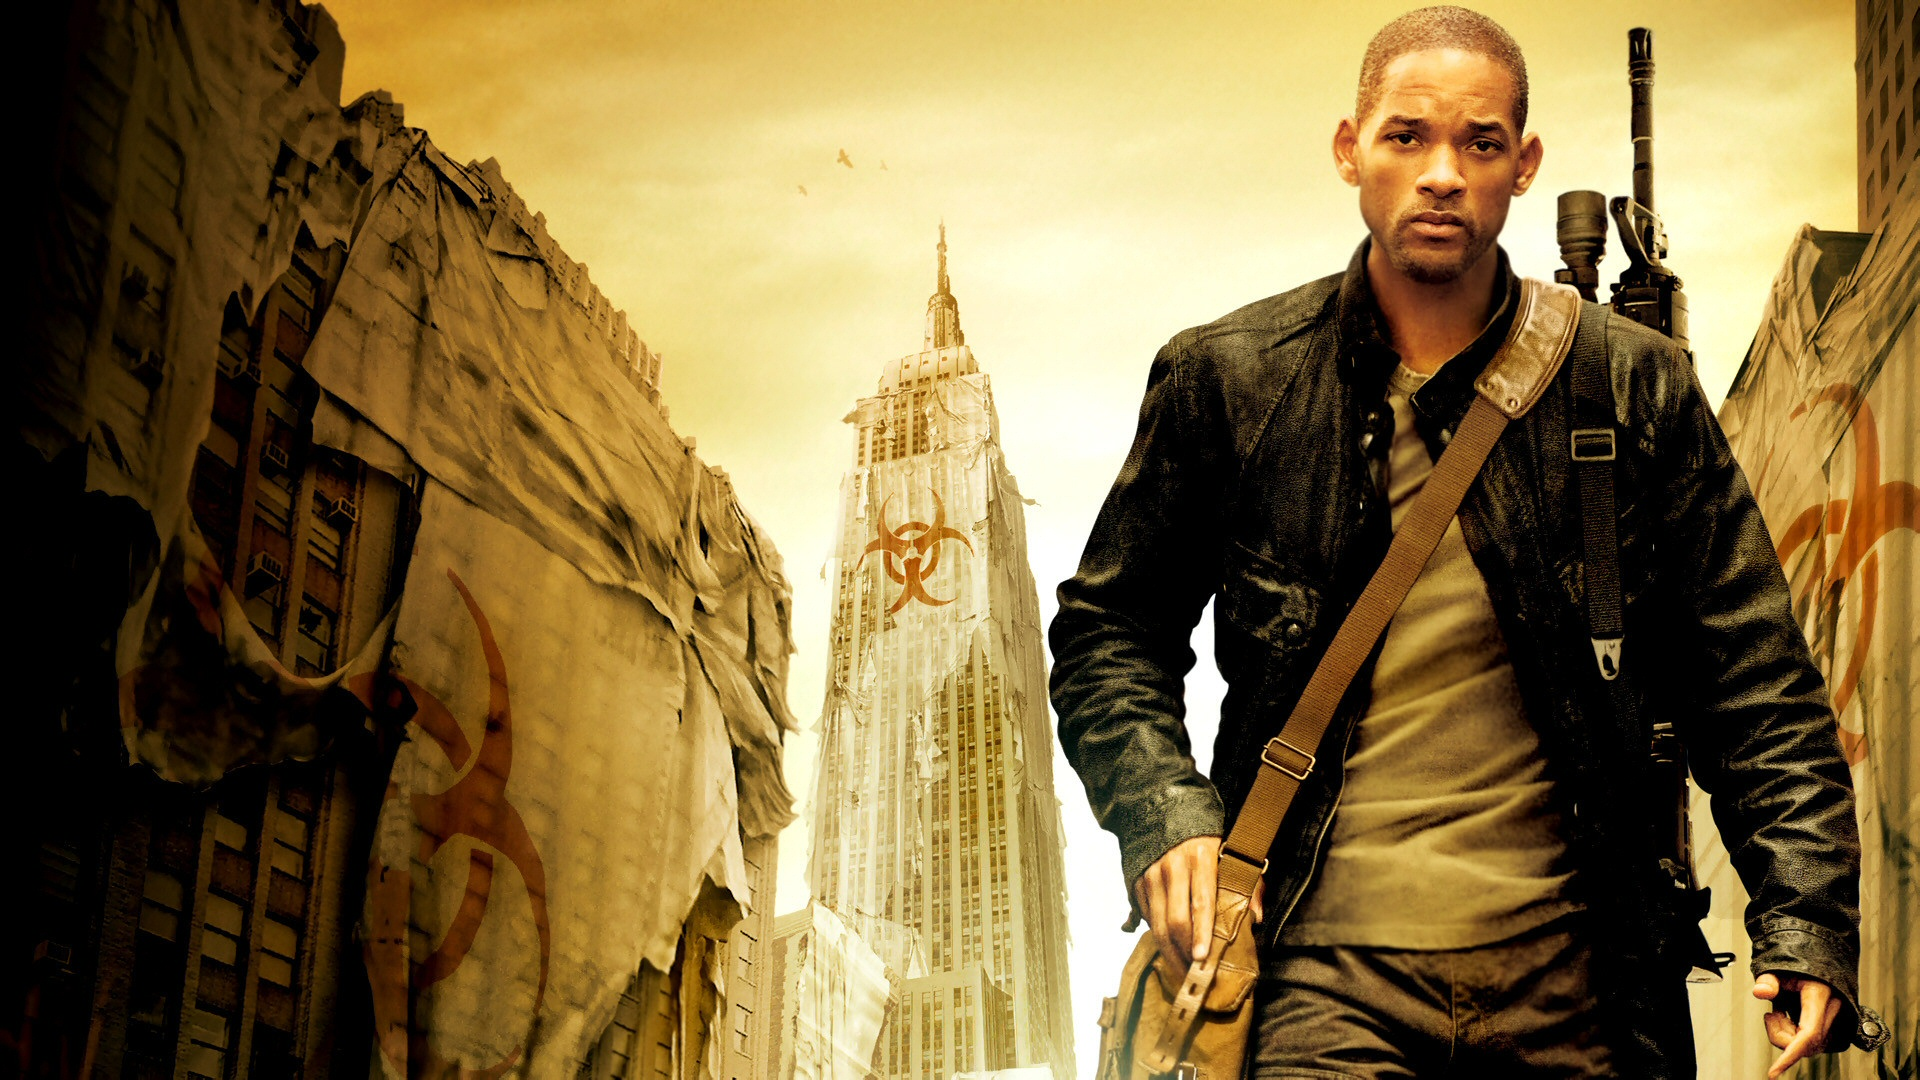 Am Legend Posters Buy a Poster 1920x1080